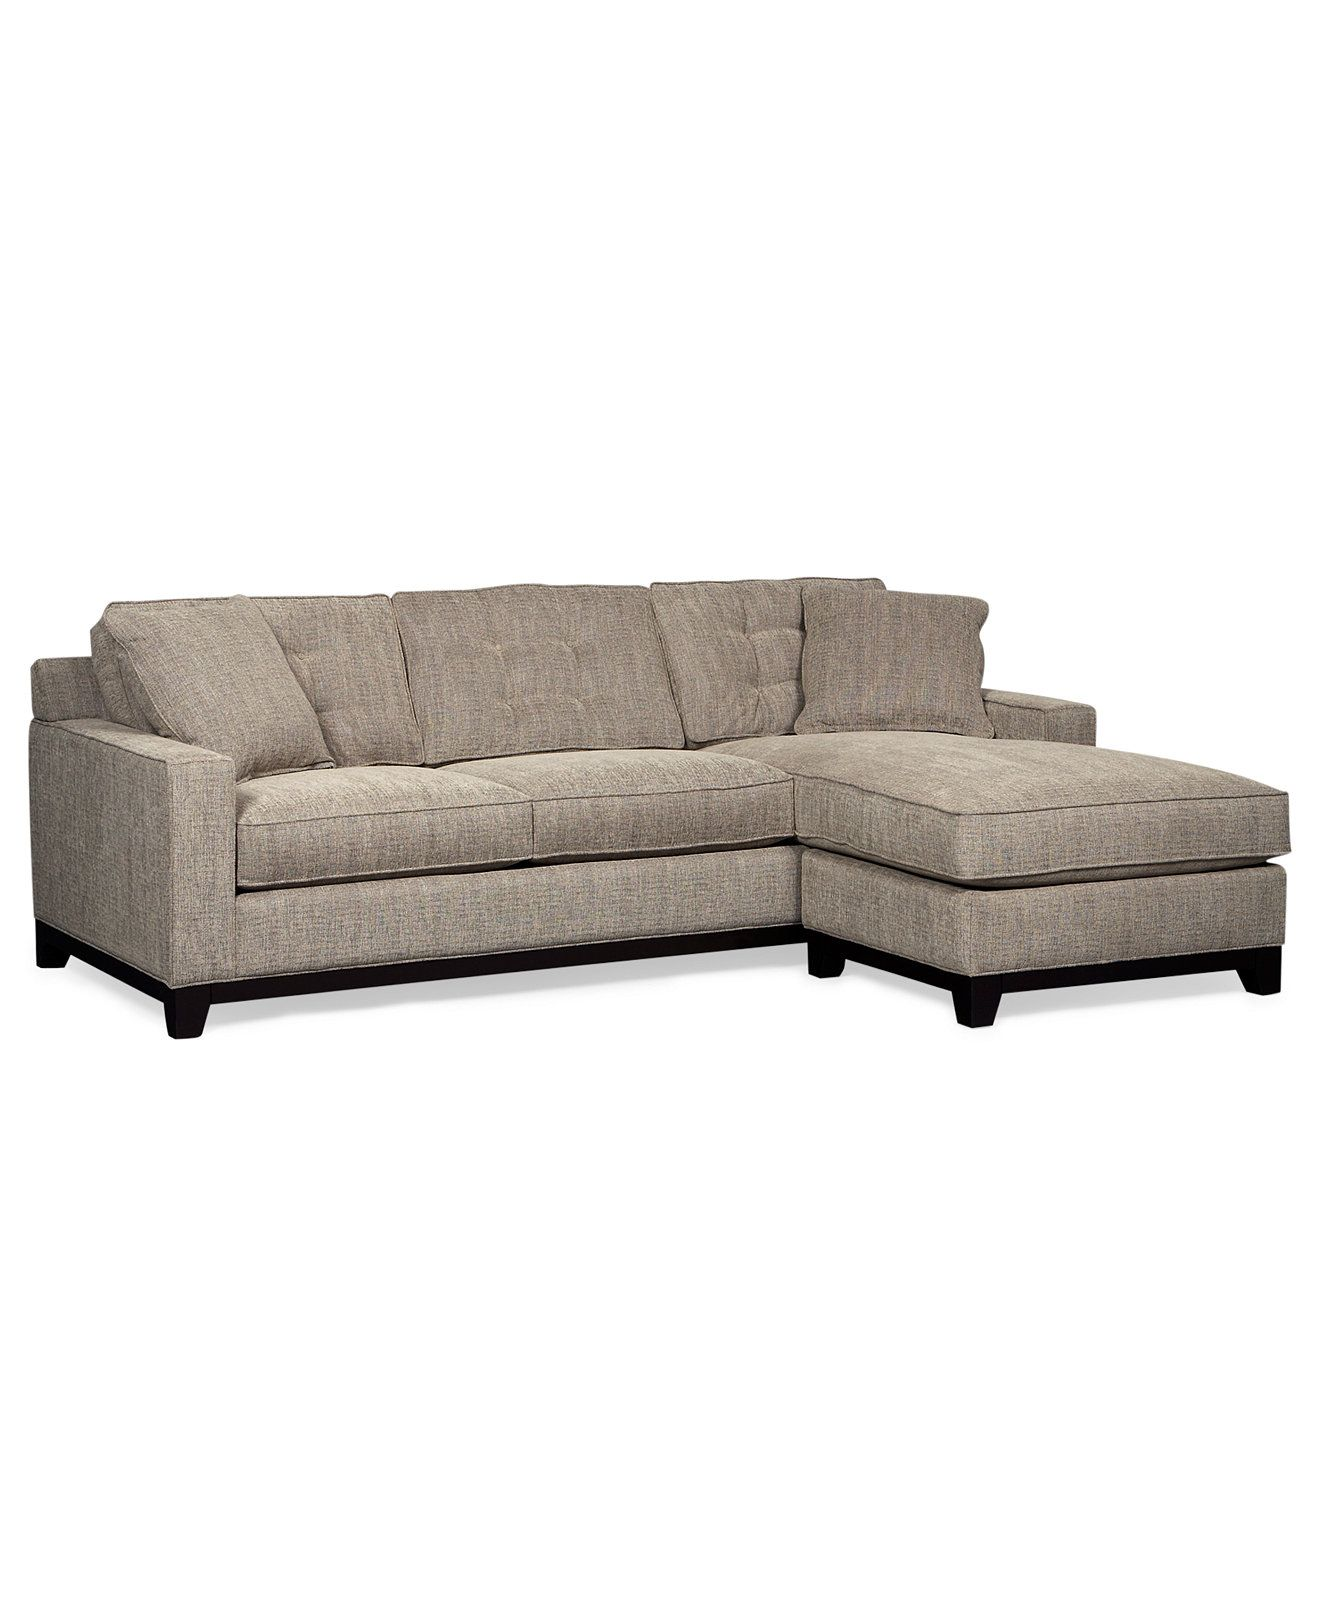 Clarke Fabric 2 Piece Sectional Queen Sleeper Sofa Bed   Shop All Living  Room   Furniture   Macyu0027s